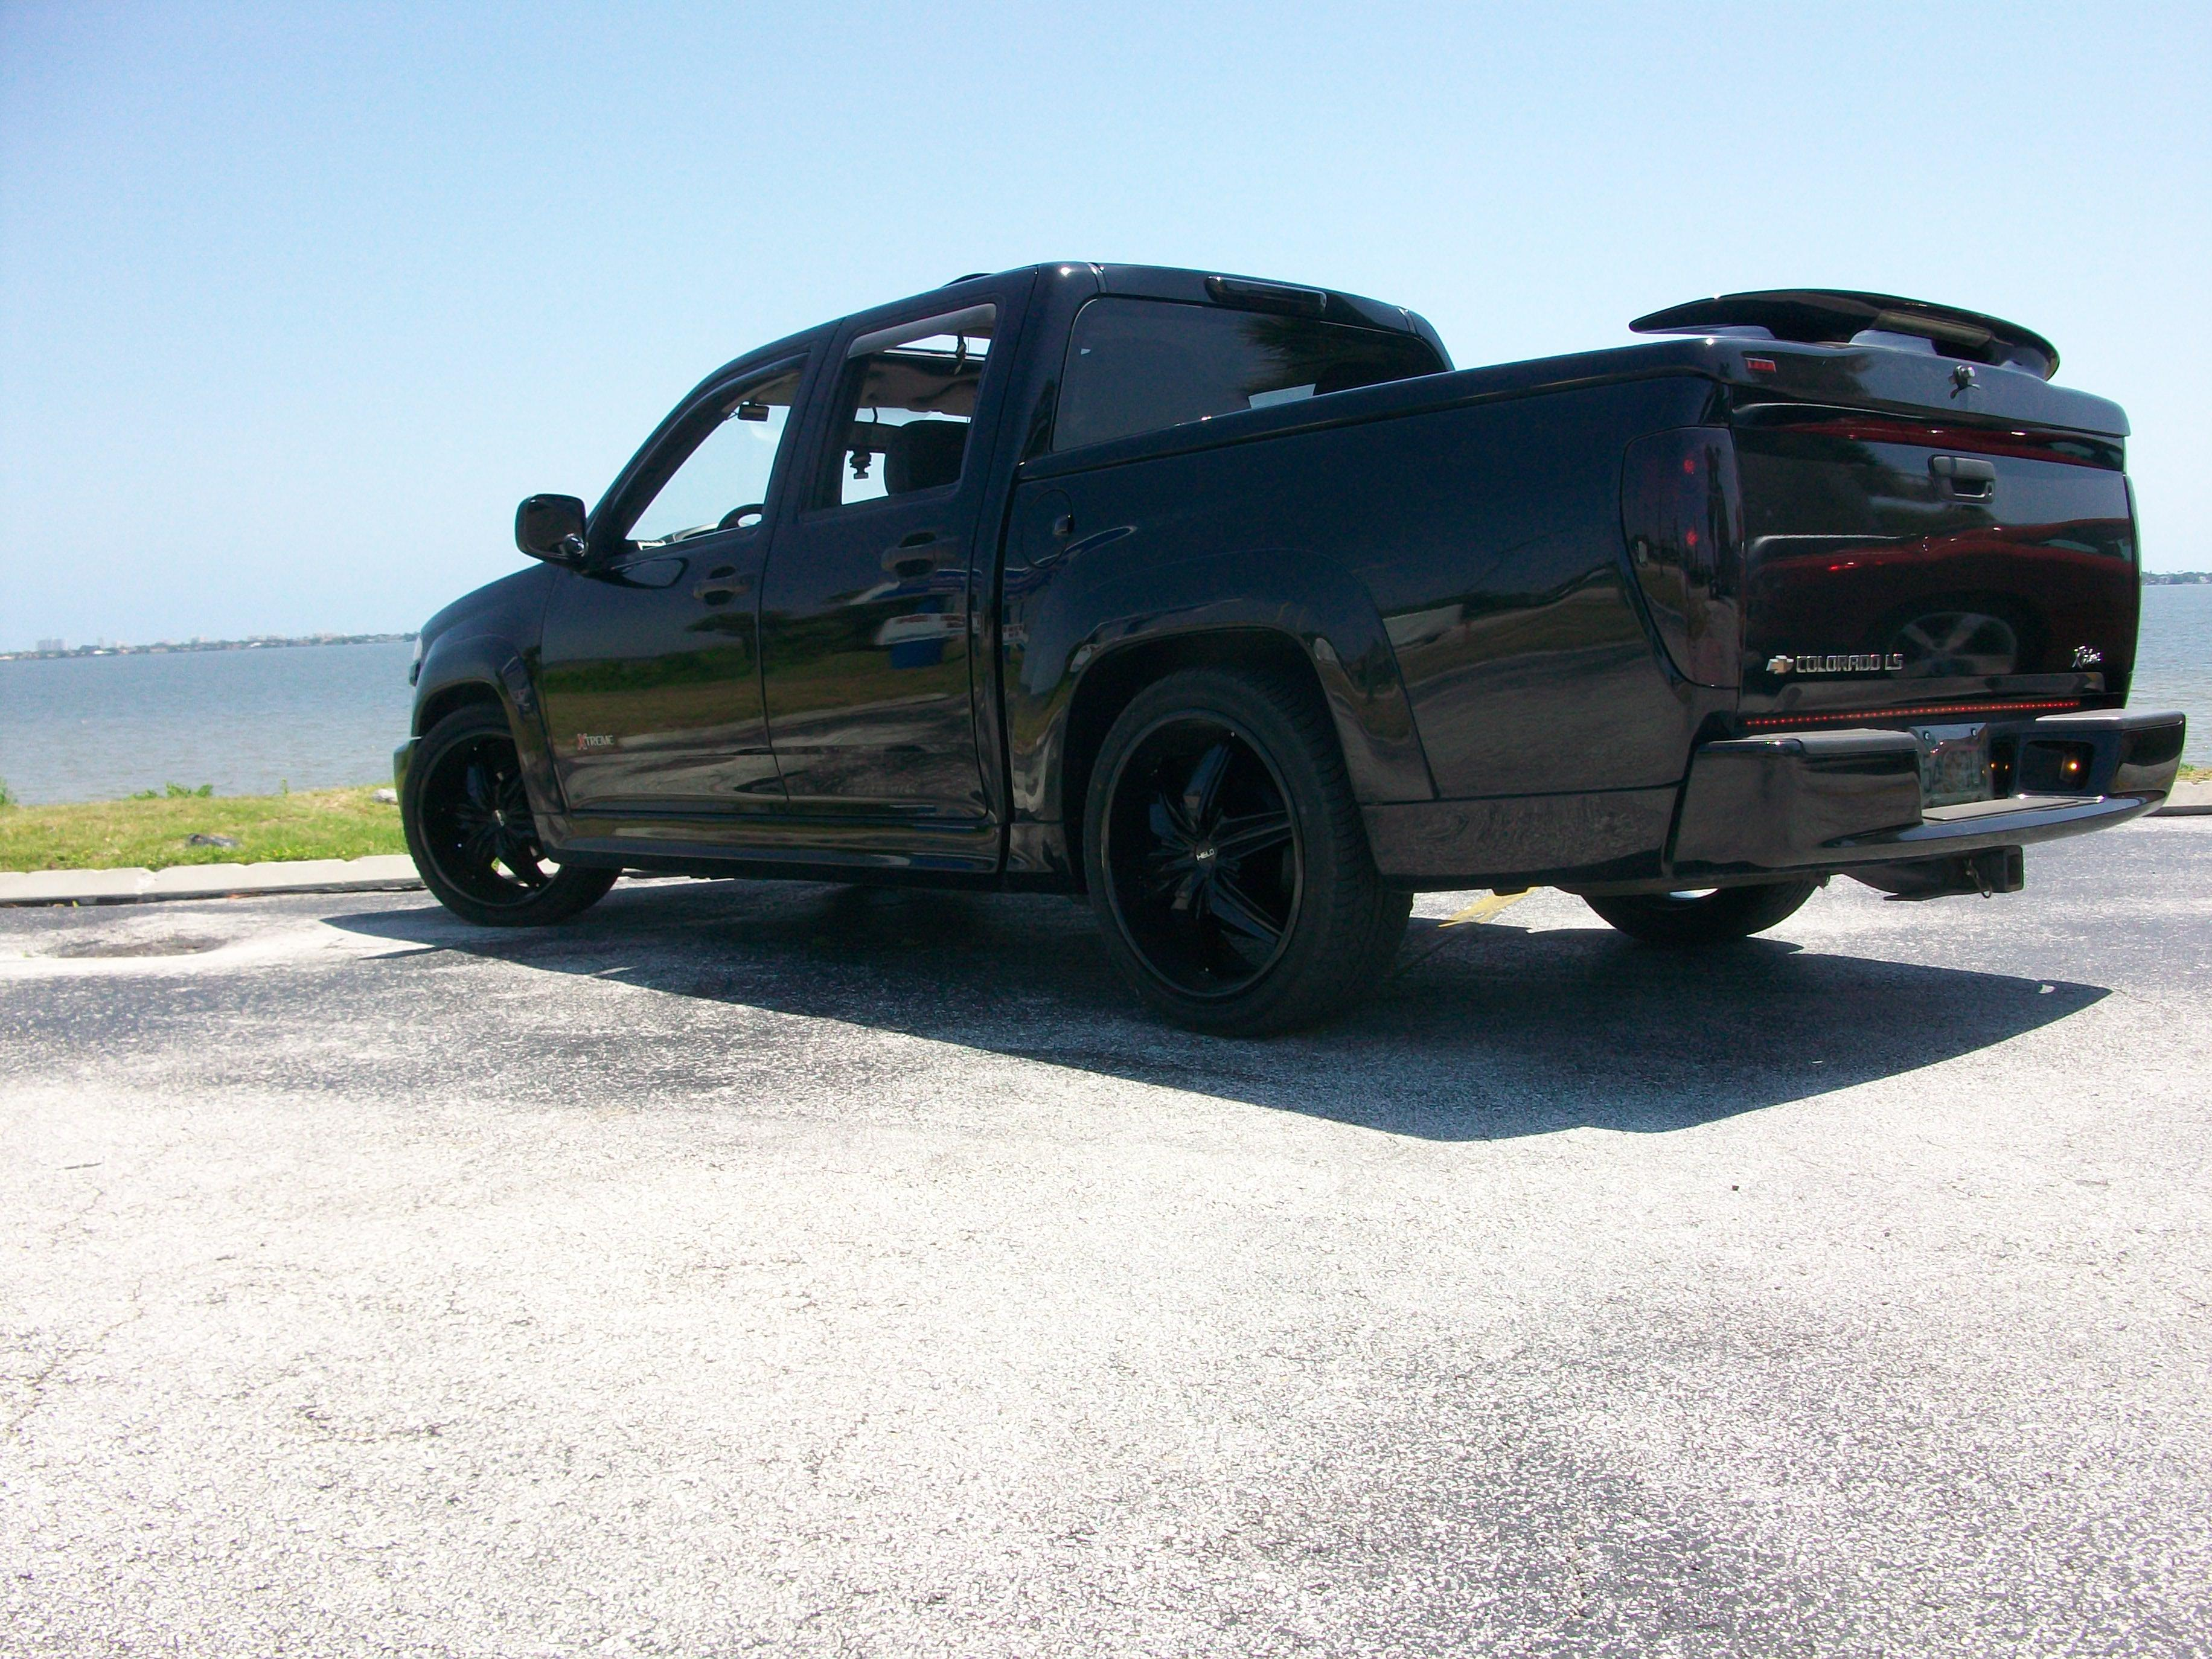 New 2015 Chevy Reaper Motor Size